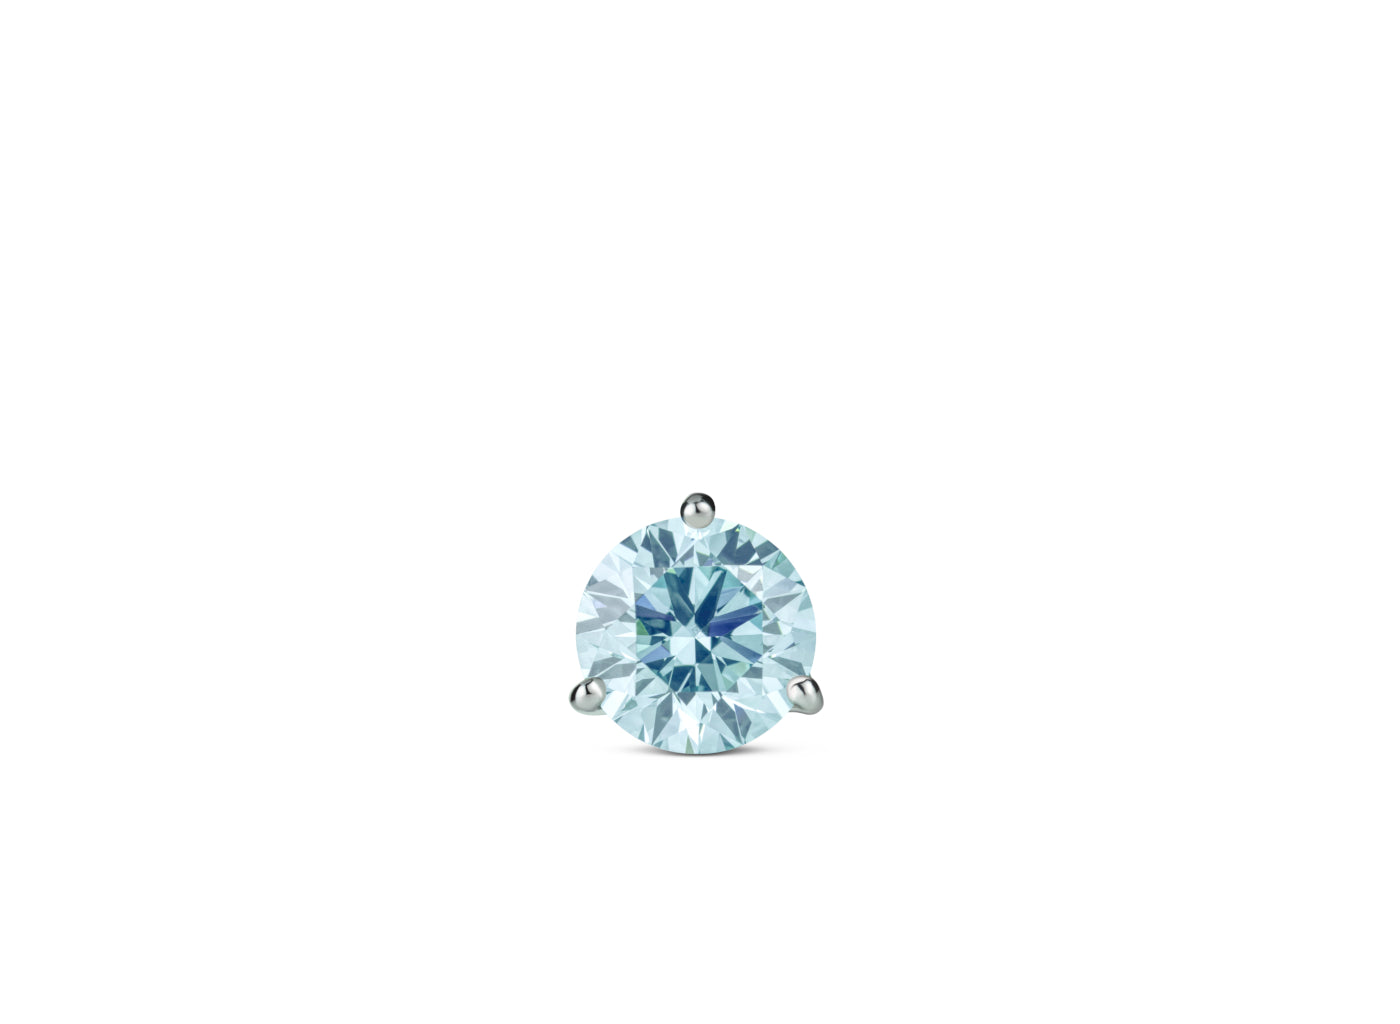 Front view of Solitaire 1 carat stud with blue diamond